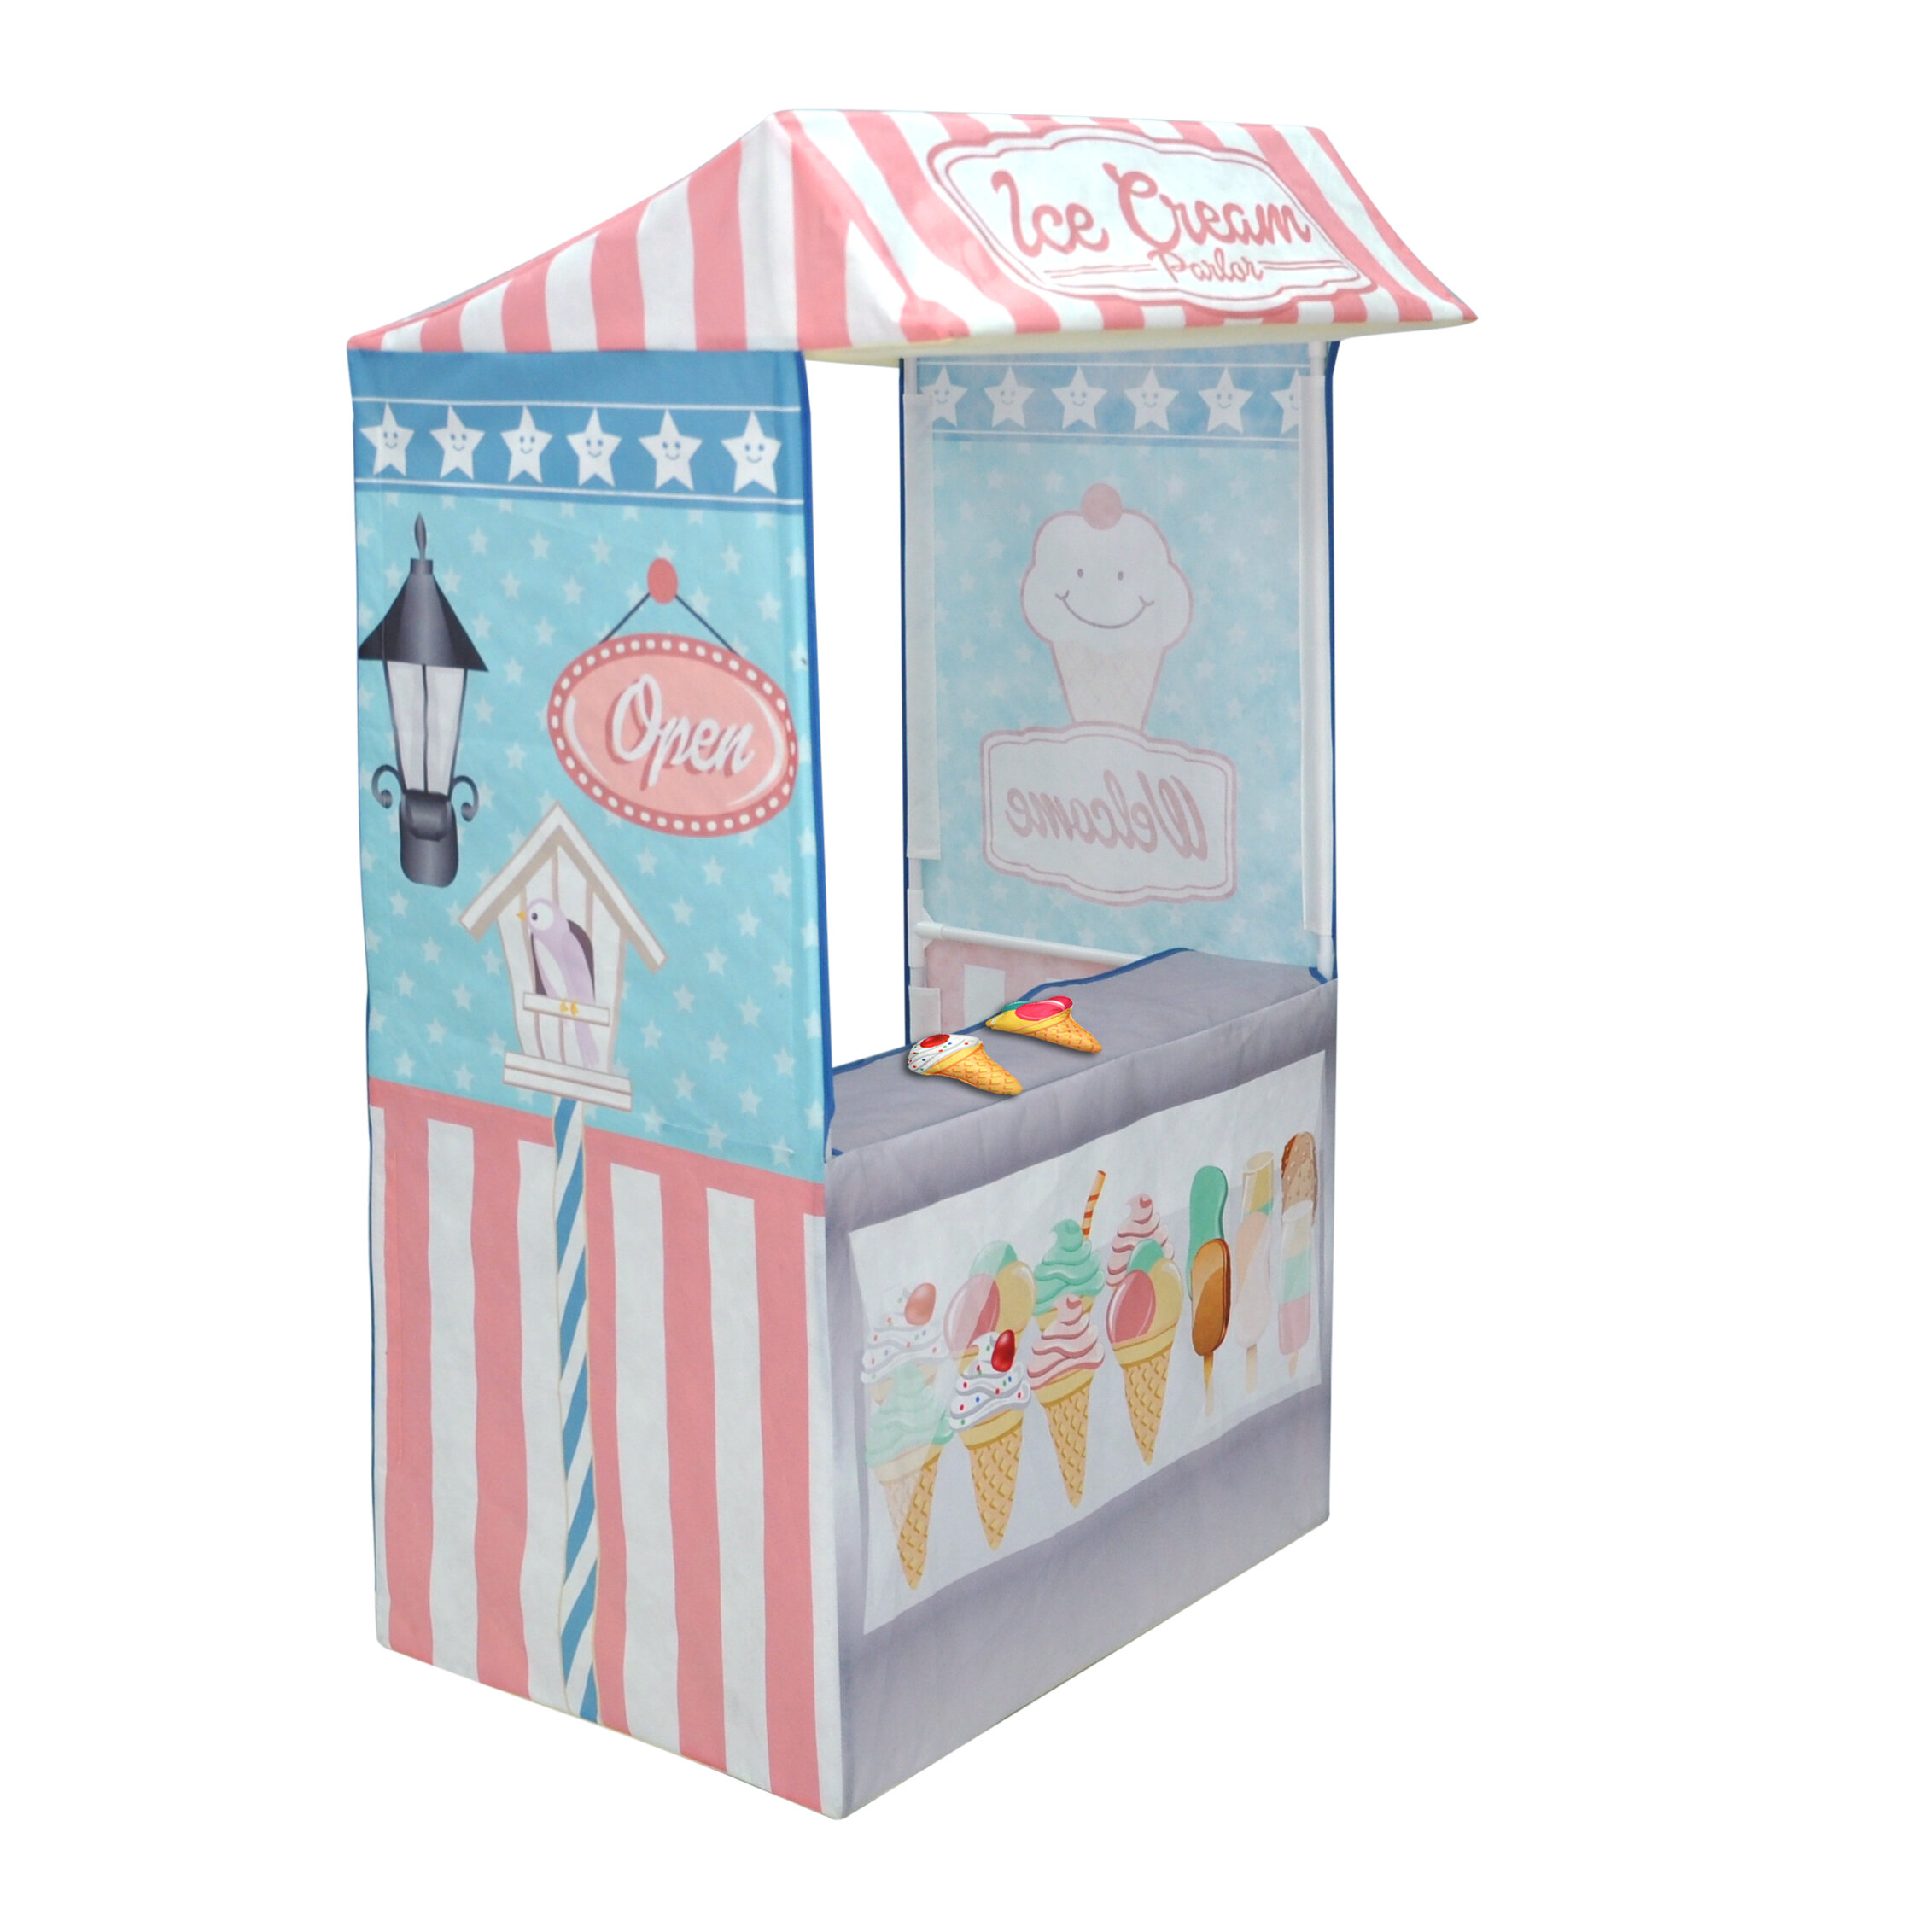 Checkey Limited Ice Cream Parlor Play Tent & Reviews | Wayfair